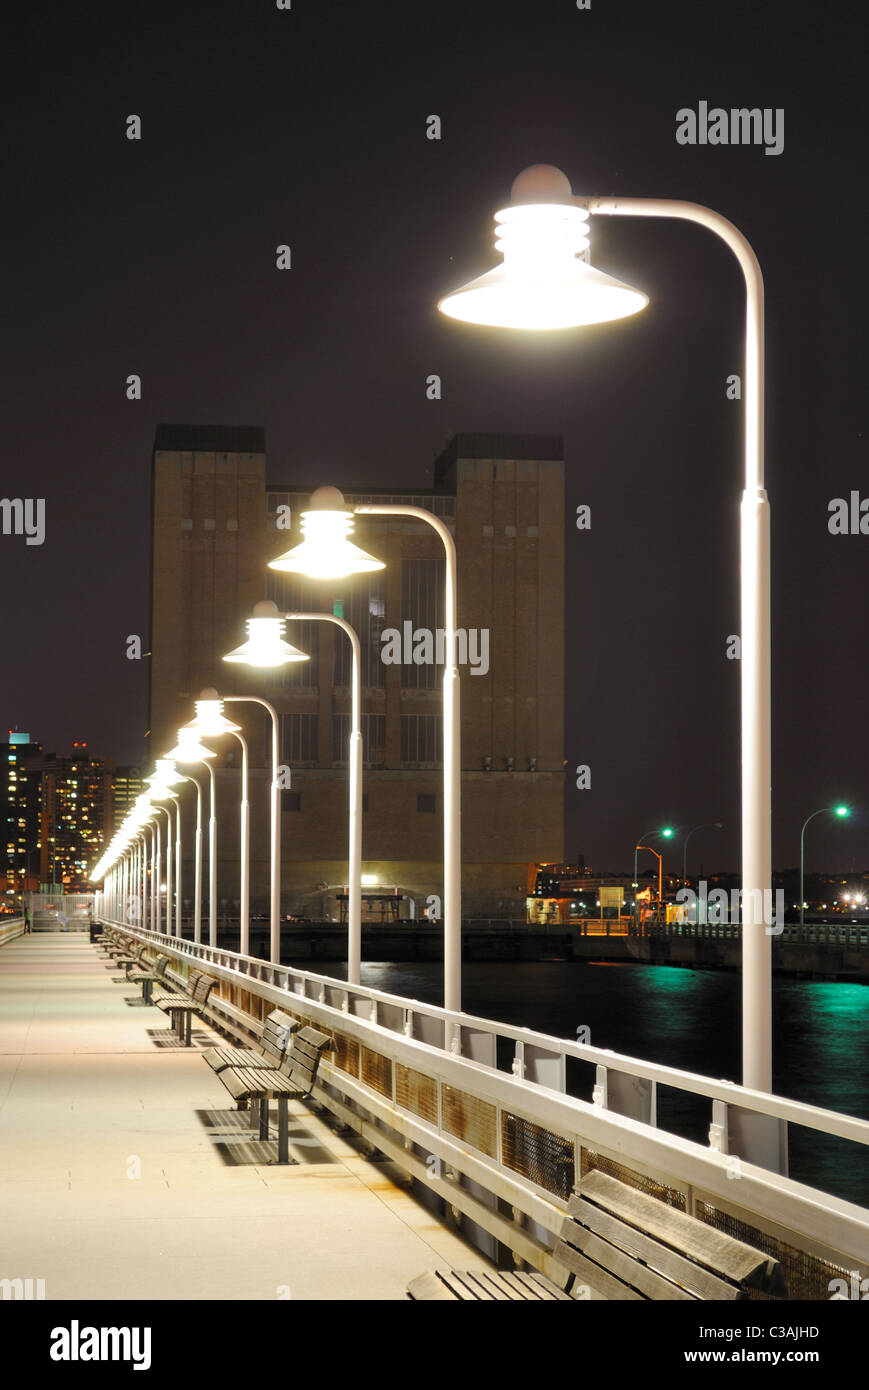 Long pier with lights in the distance. - Stock Image